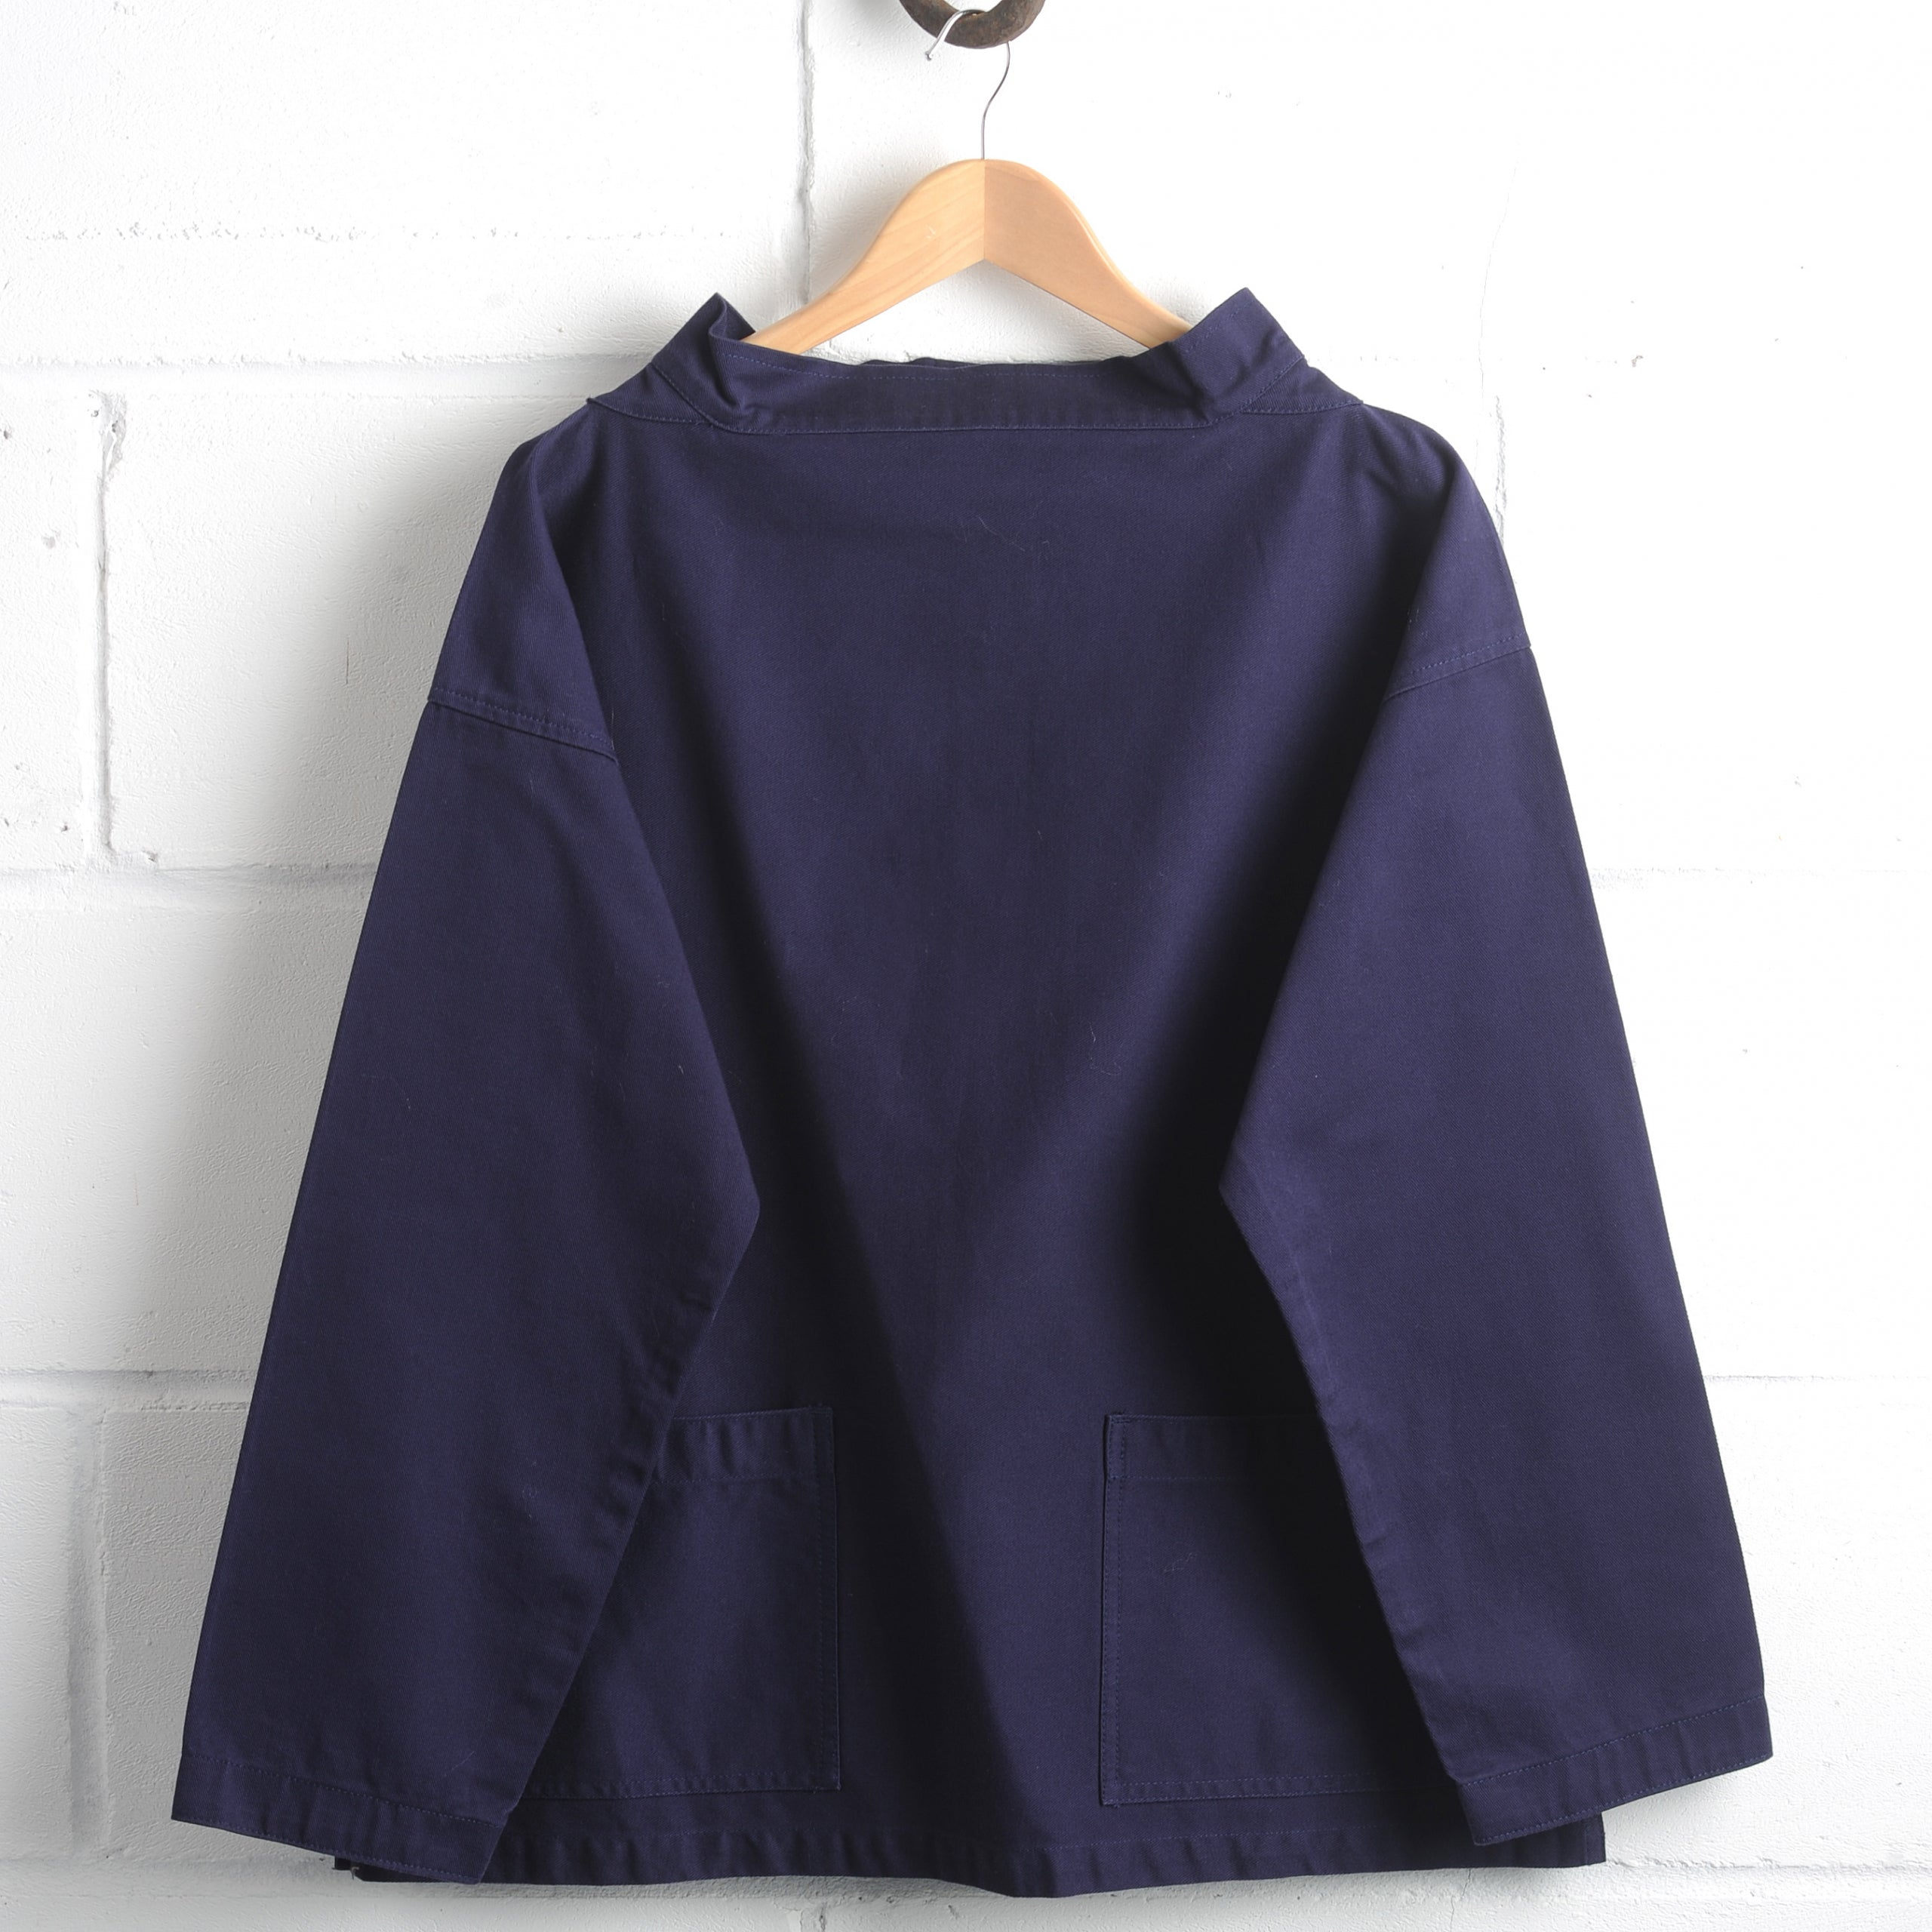 Yarmouth Oilskins - Classic Smock Navy